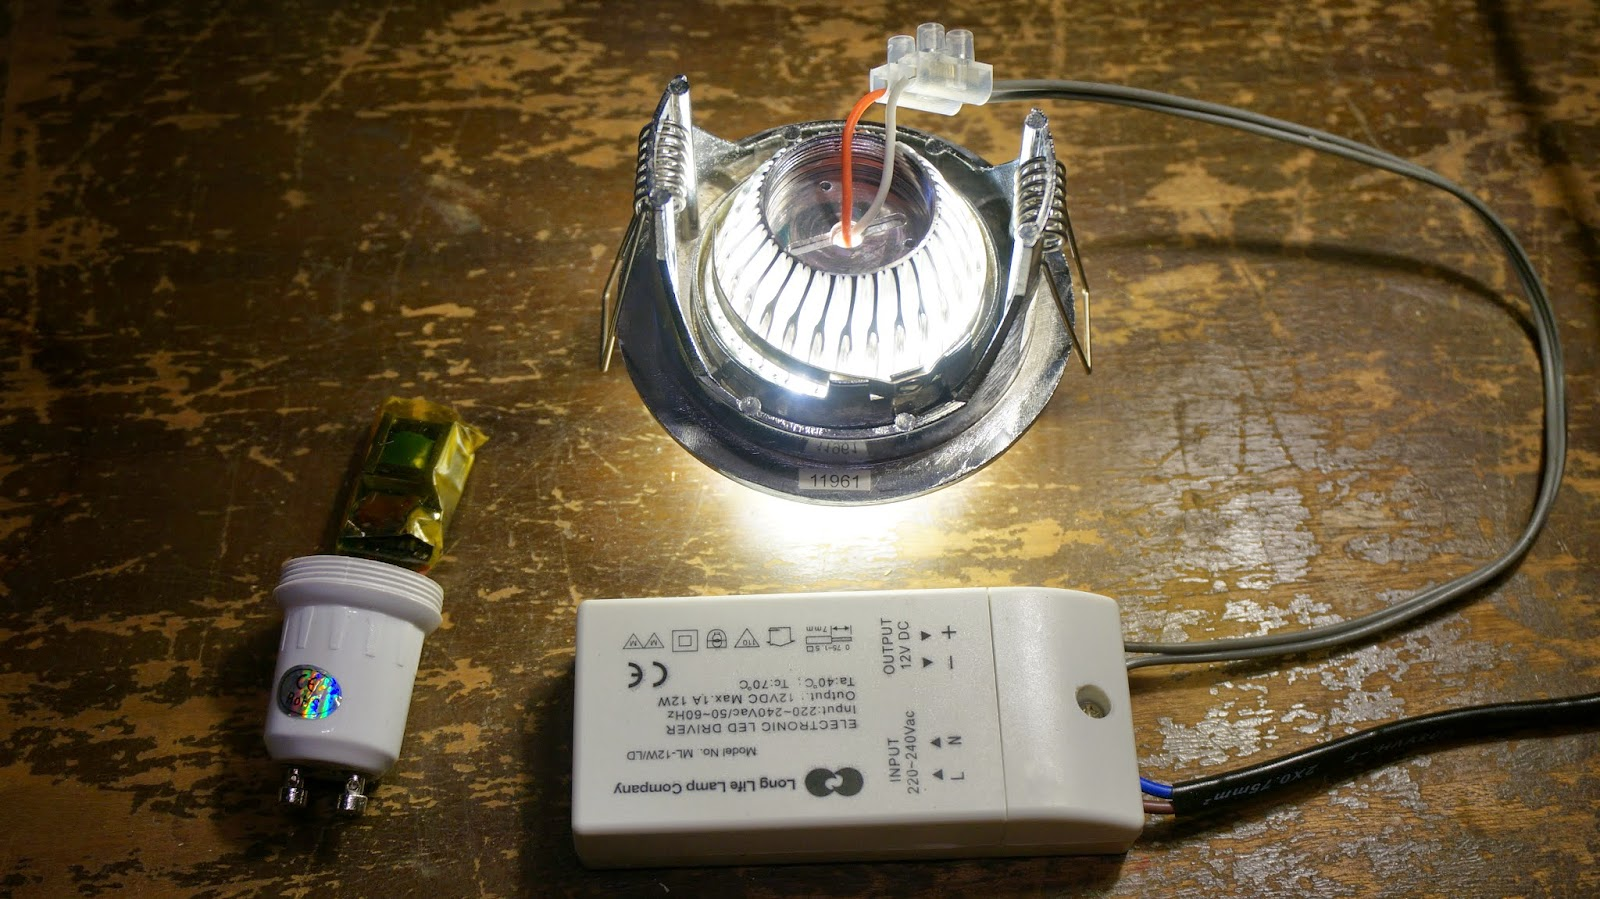 Cut Your Carbon Led Driver Powers Halogen Replacement This Design Flaw In Such Cheap Gu10 Bulbs Is Actually An Argument Favour Of Low Voltage Mr16 Leds These Replace 12 Volt Lamps Directly But